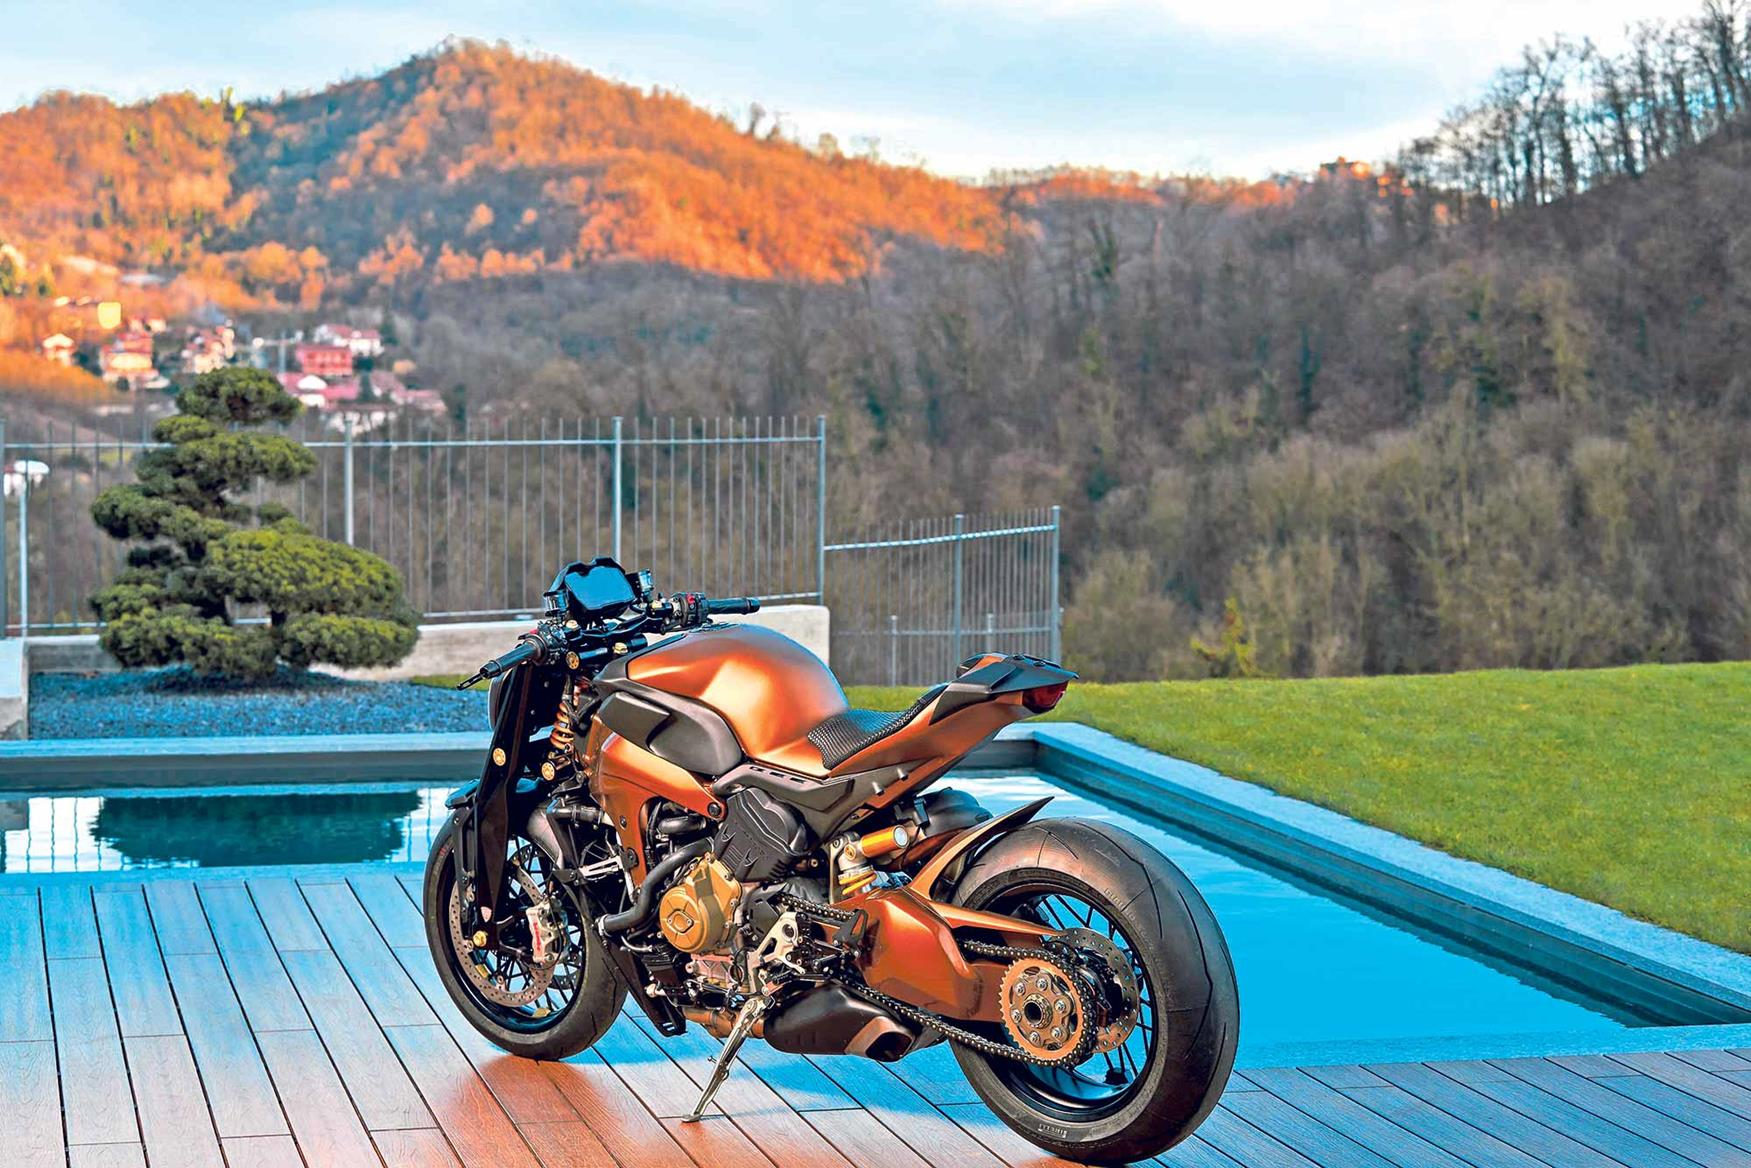 The bike has a special copper finish